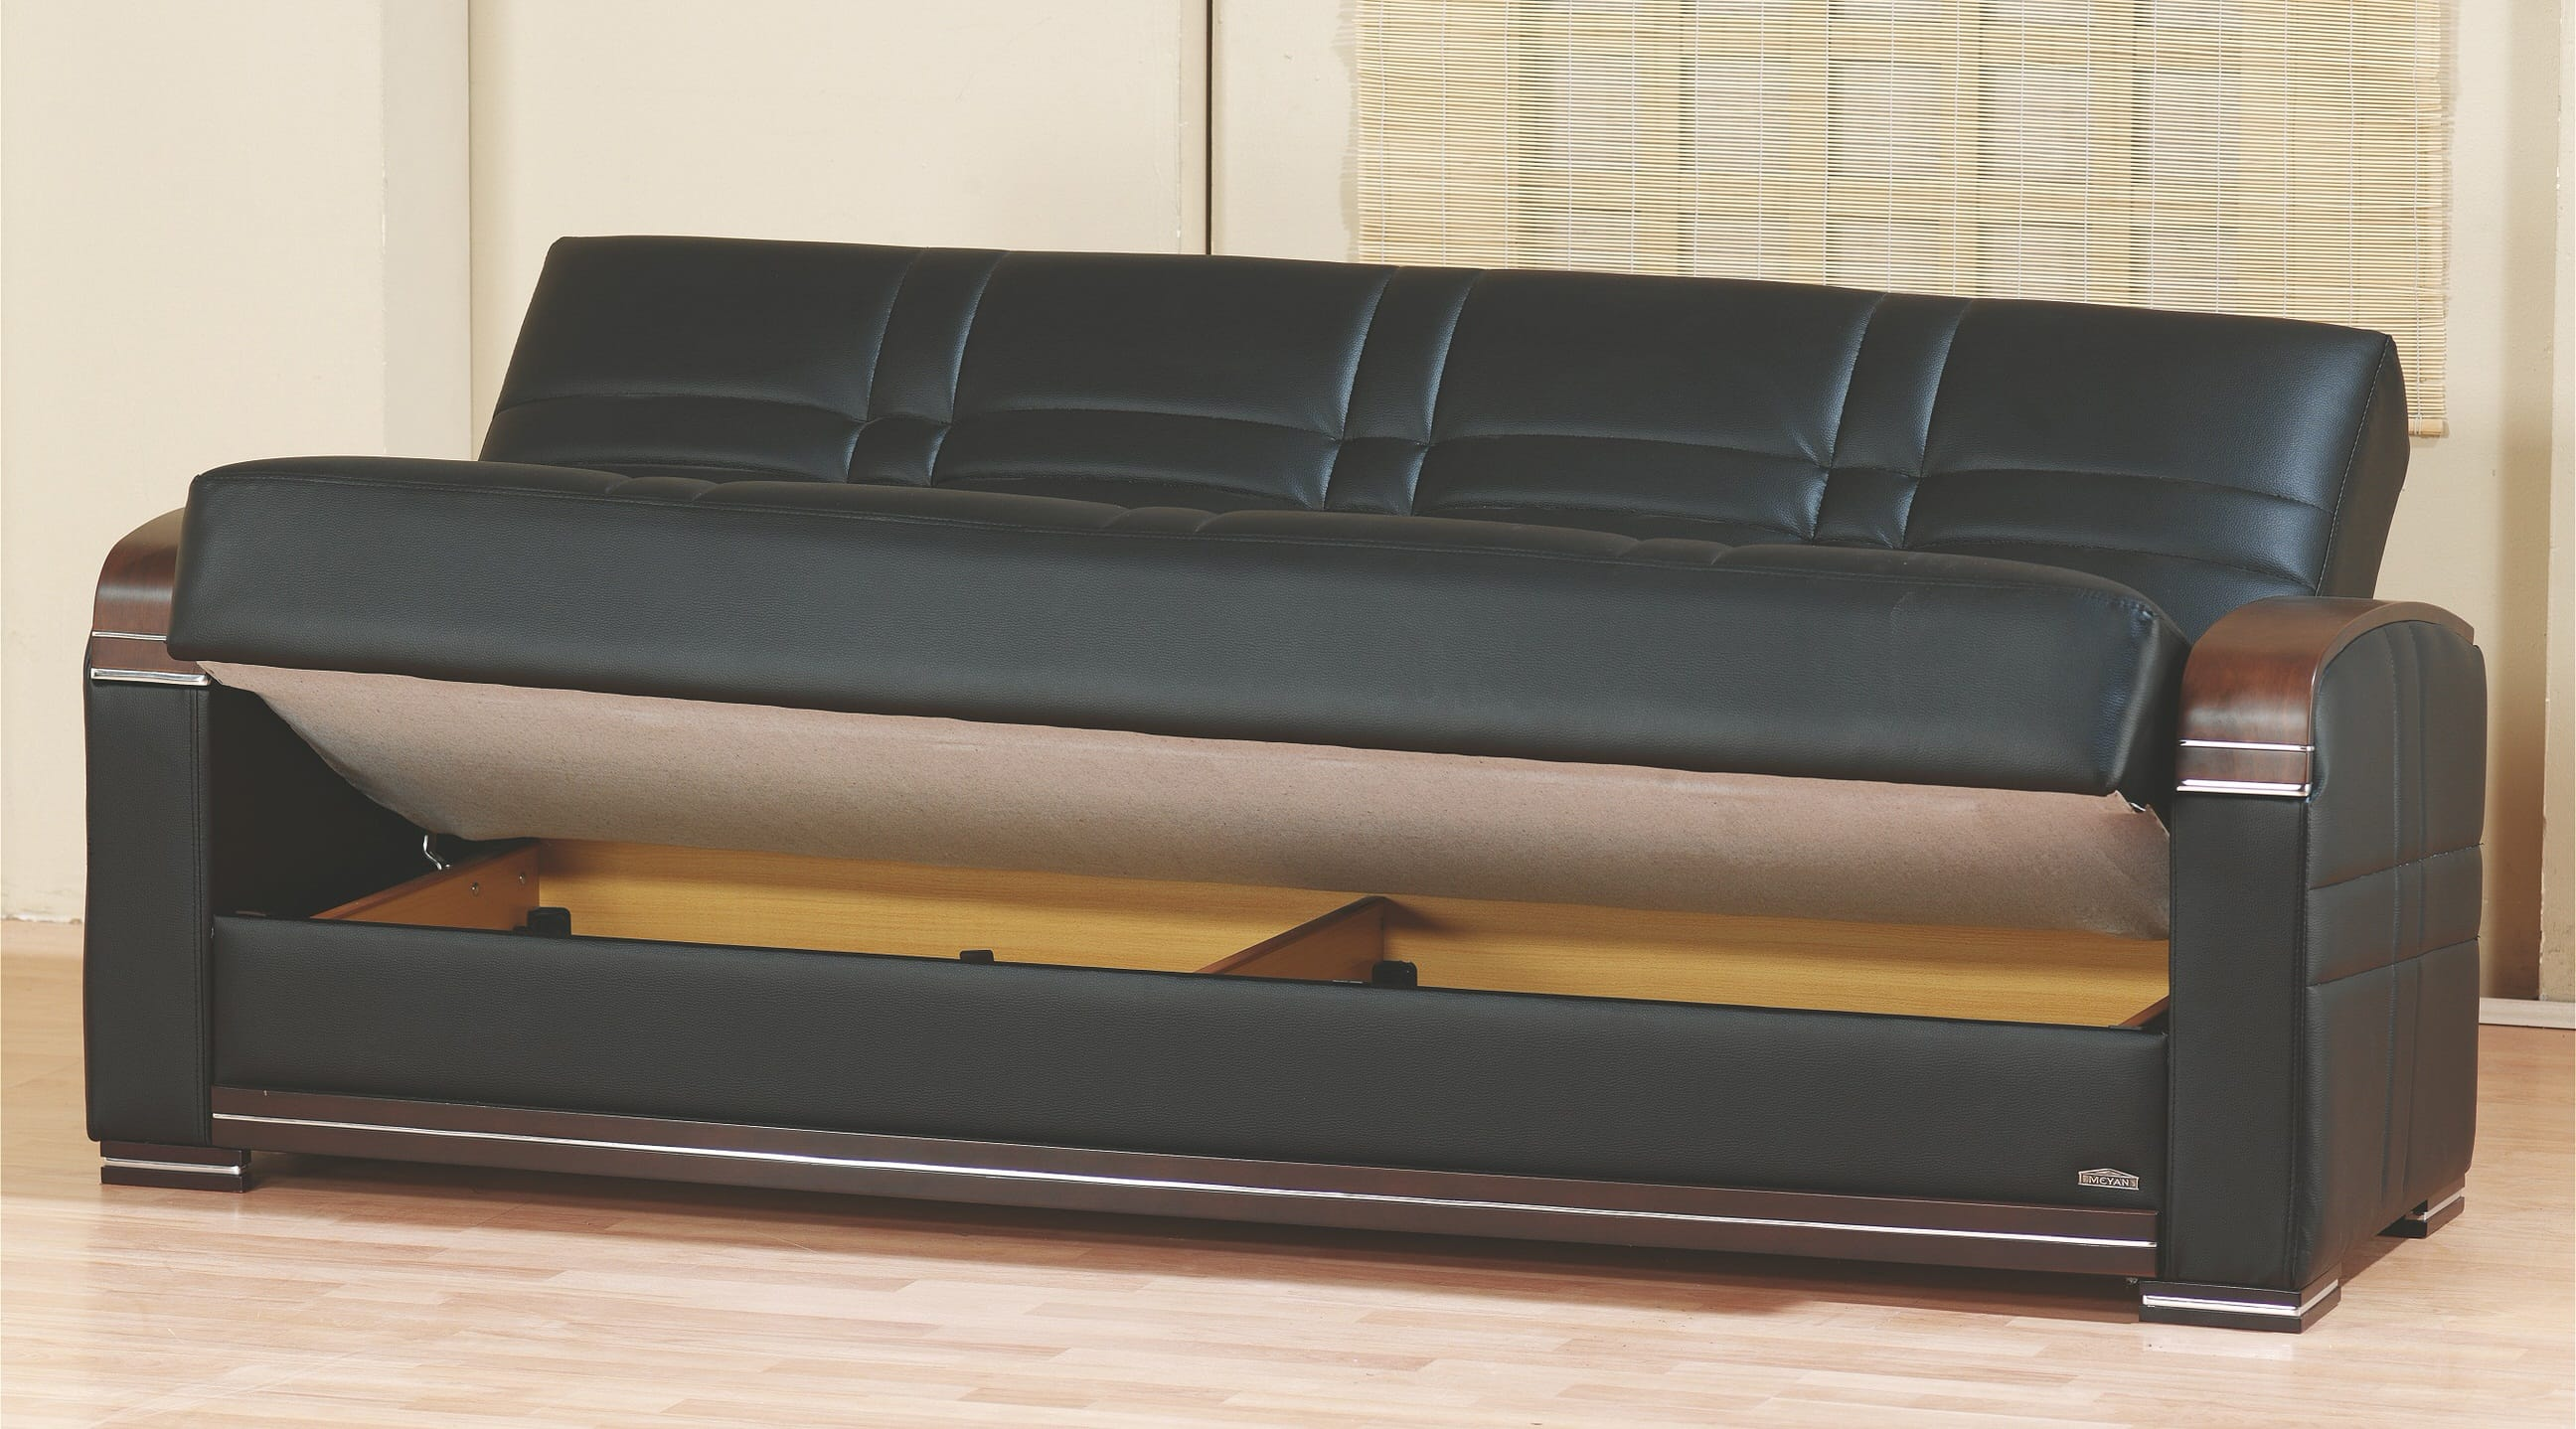 Bronx Black Leather Sofa Bed By Empire Furniture USA